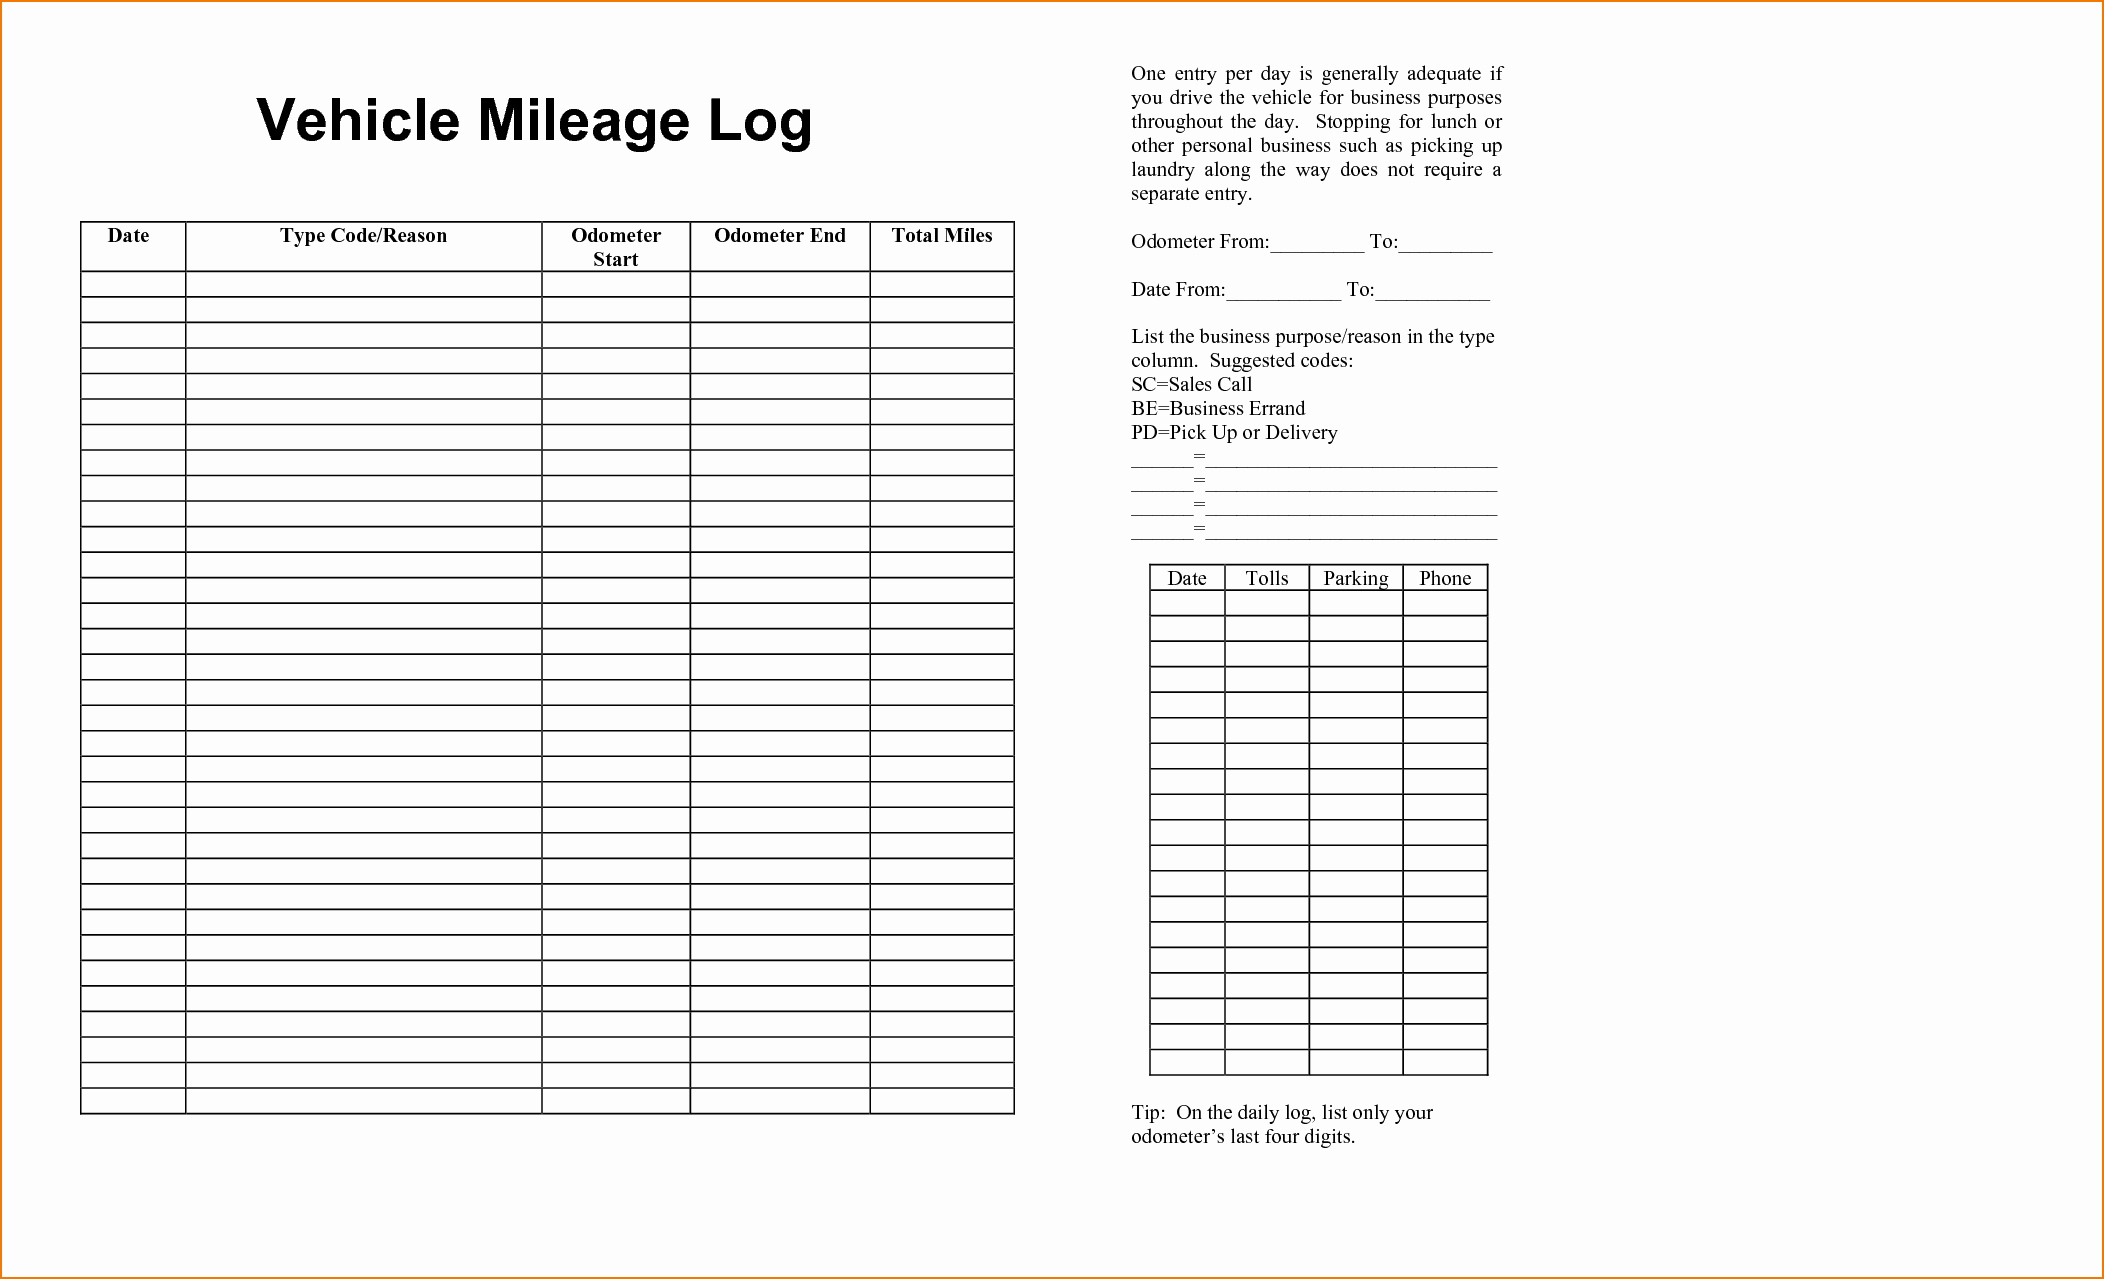 Mileage Log form for Taxes Best Of 6 Vehicle Mileage Log